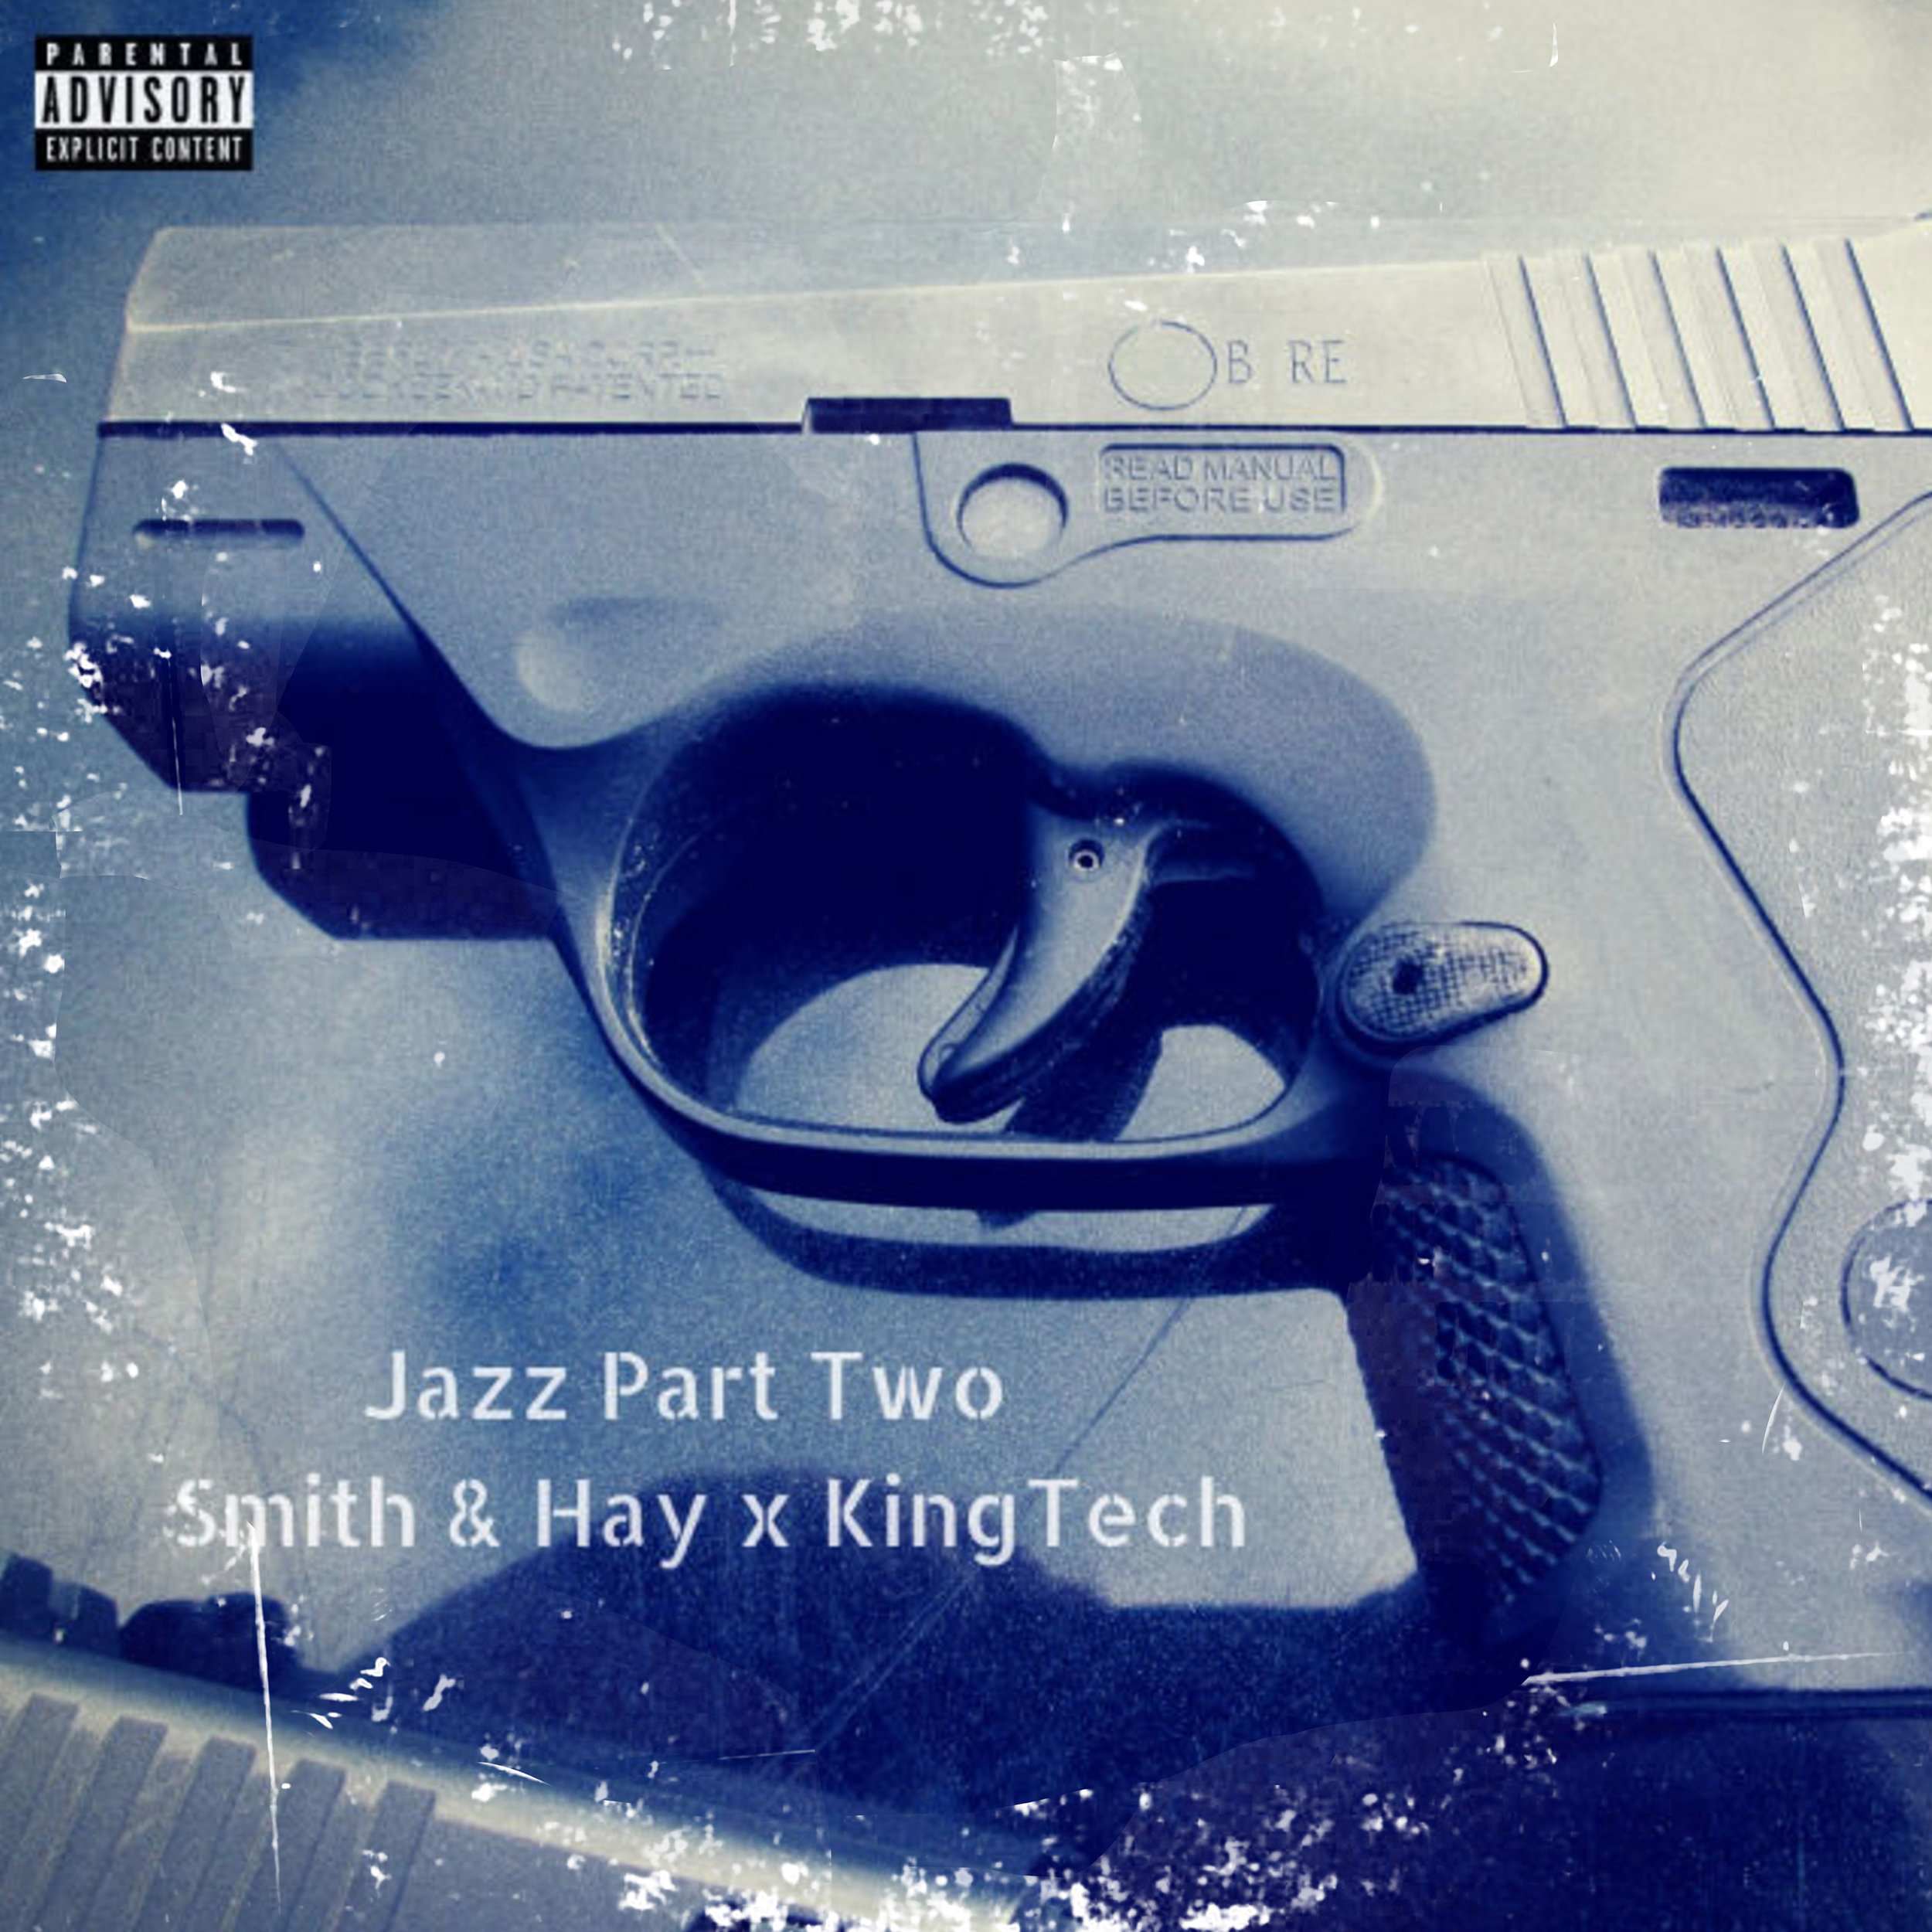 Jazz Part Two by Smith & Hay x King Tech